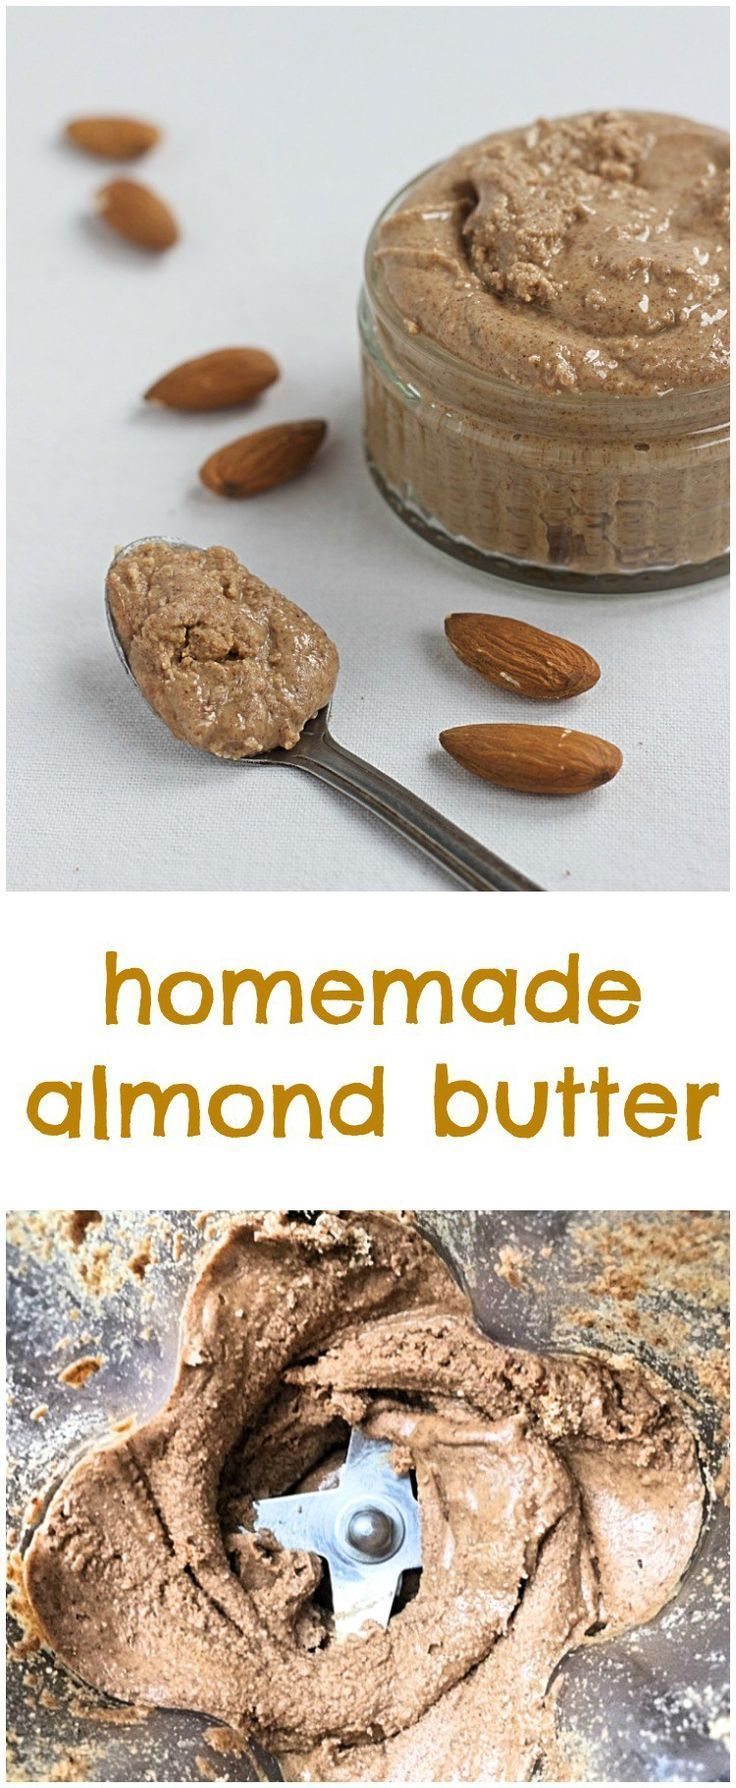 almond butter made in 60 seconds. Delicious and so easy to make with a high powdered blender. All you need is almonds and a pinch of salt.